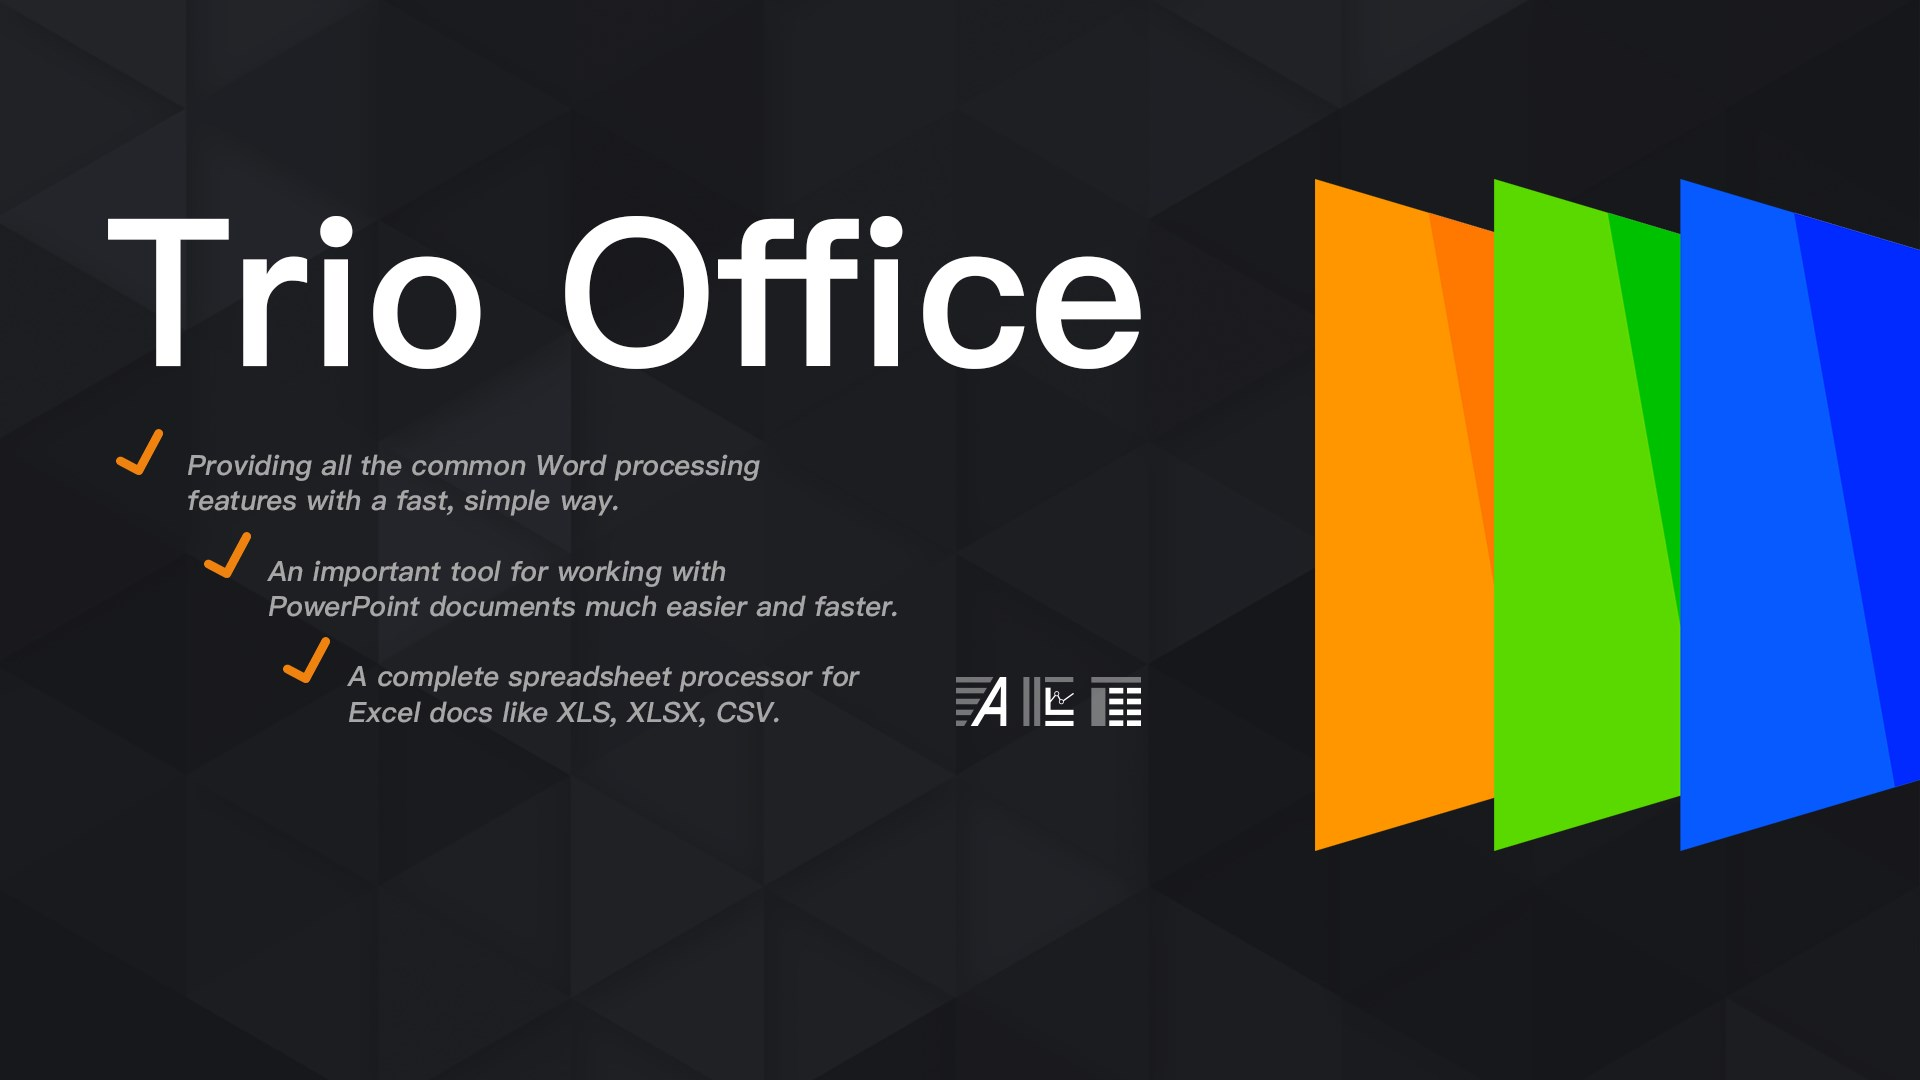 microsoft office word 2010 free download for mac os x